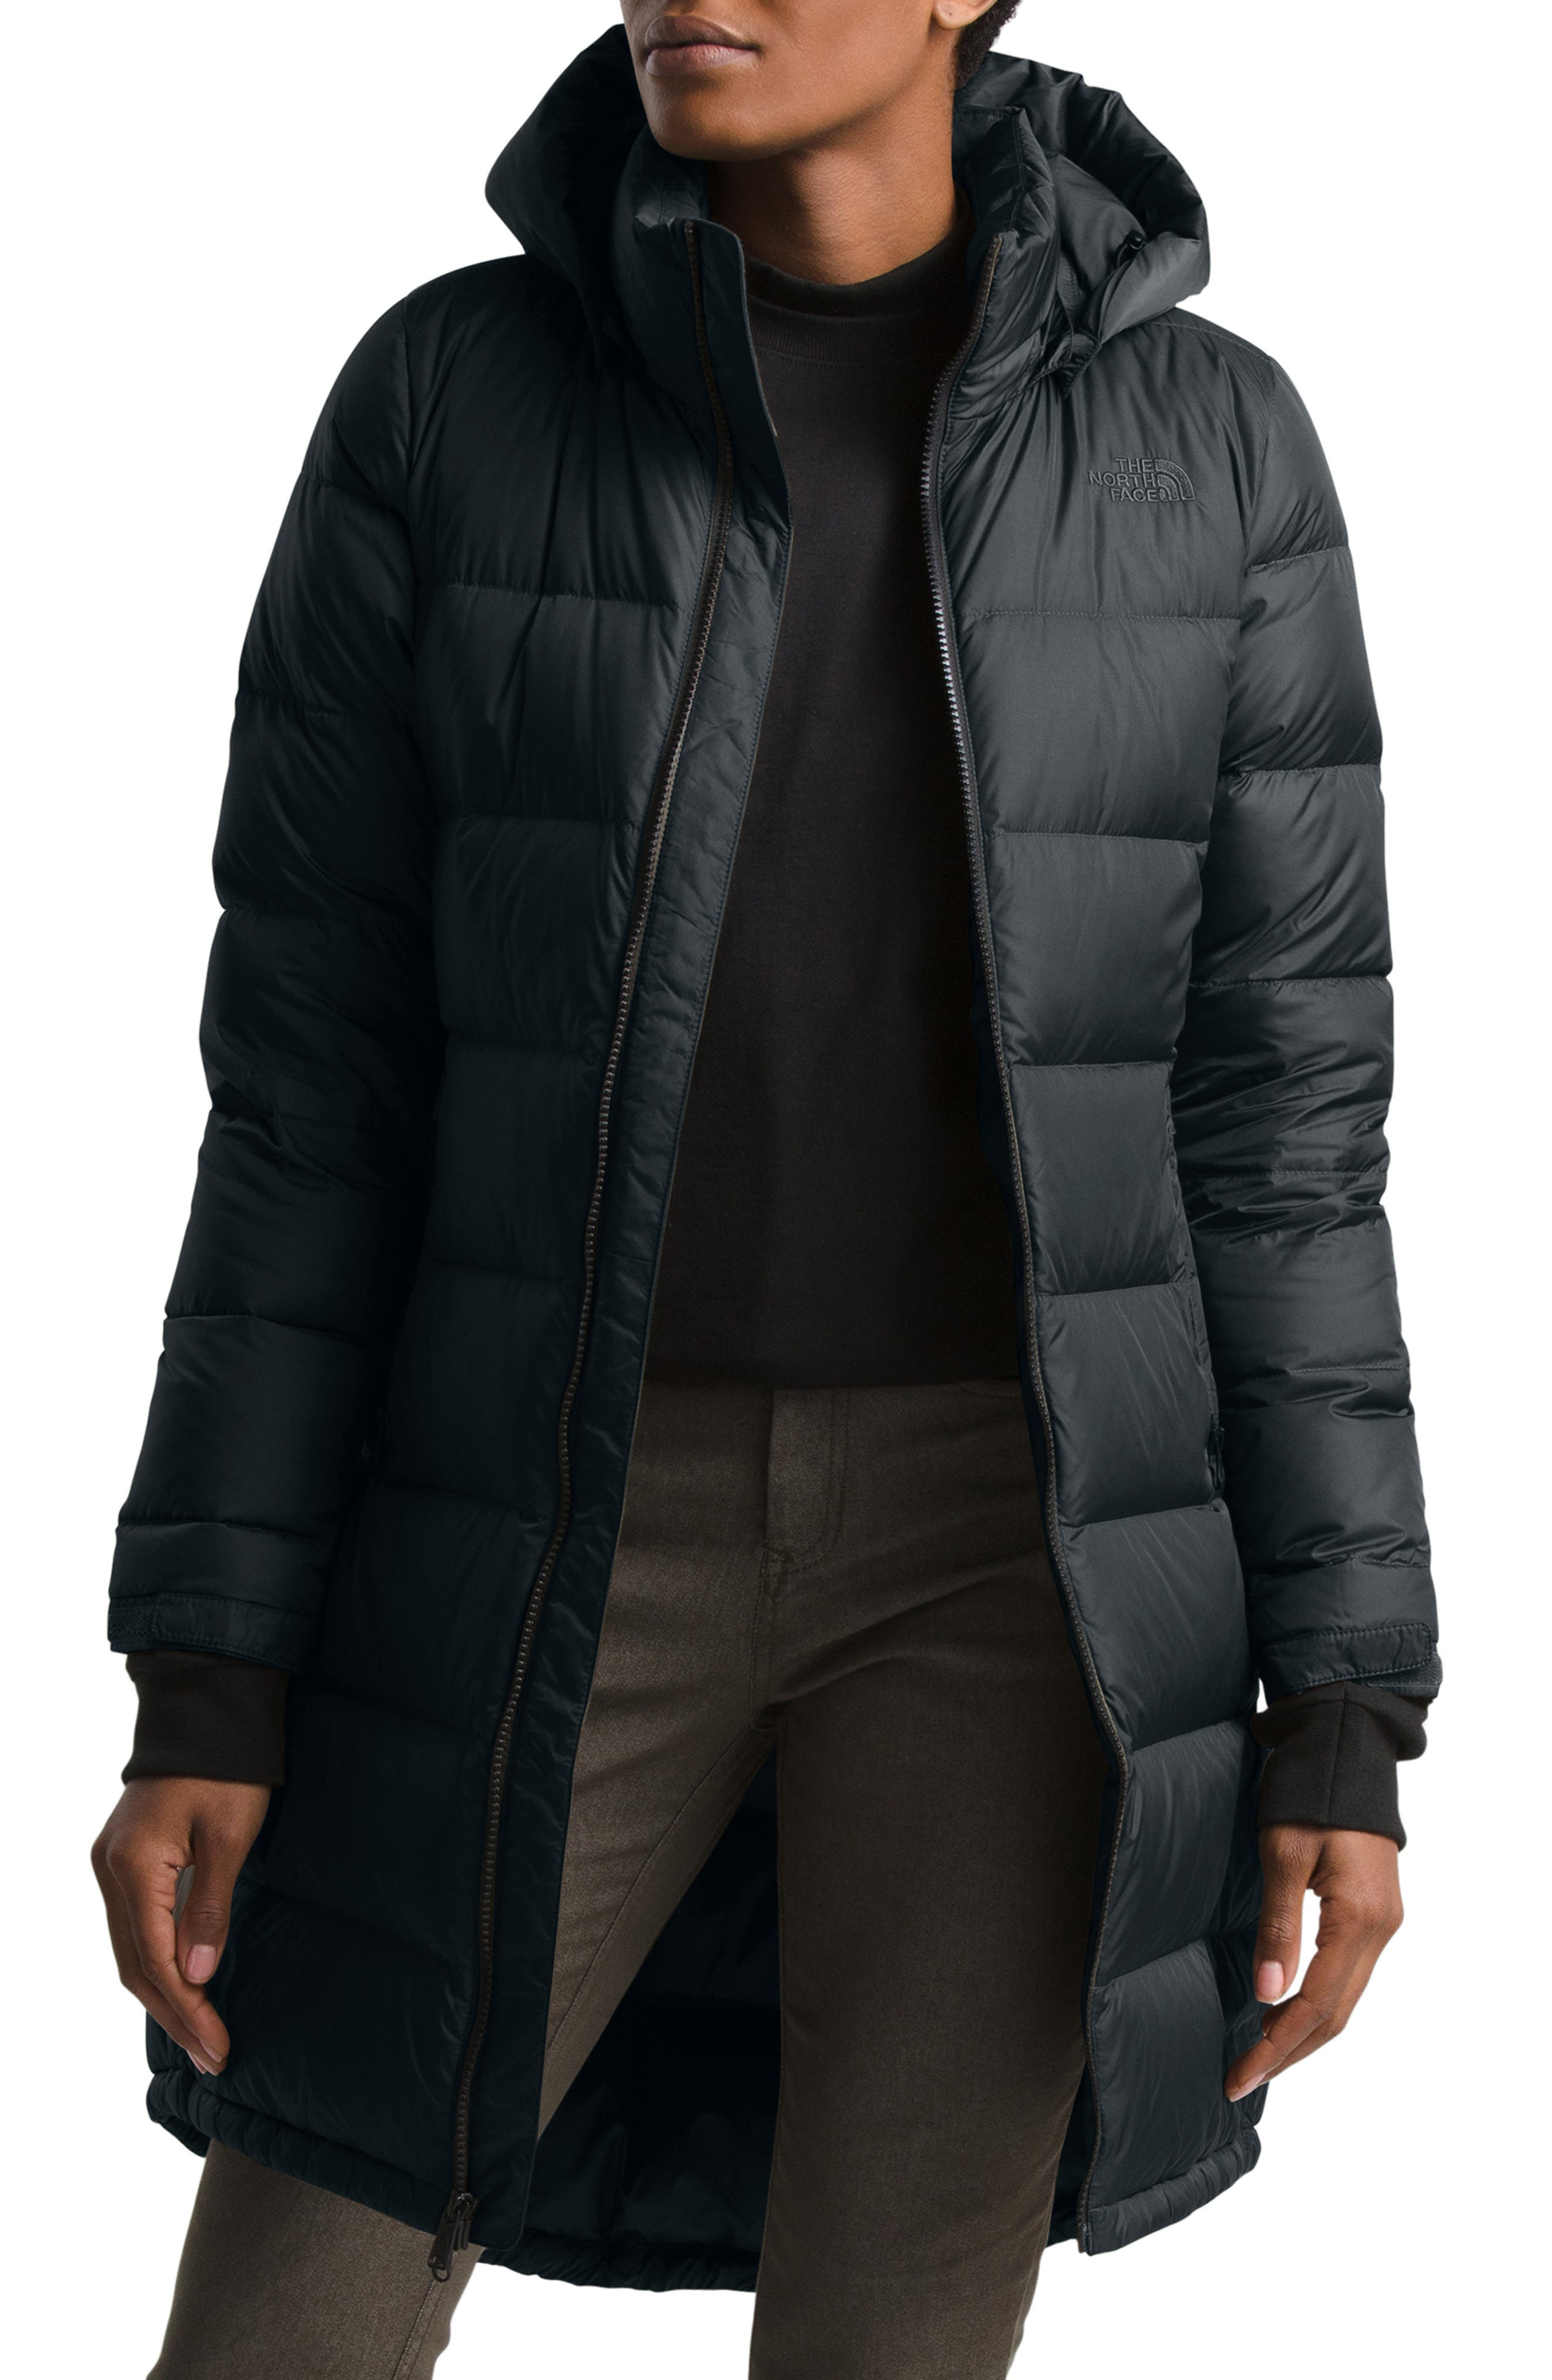 Image of The North Face Metropolis III Hooded Water Resistant Down Parka